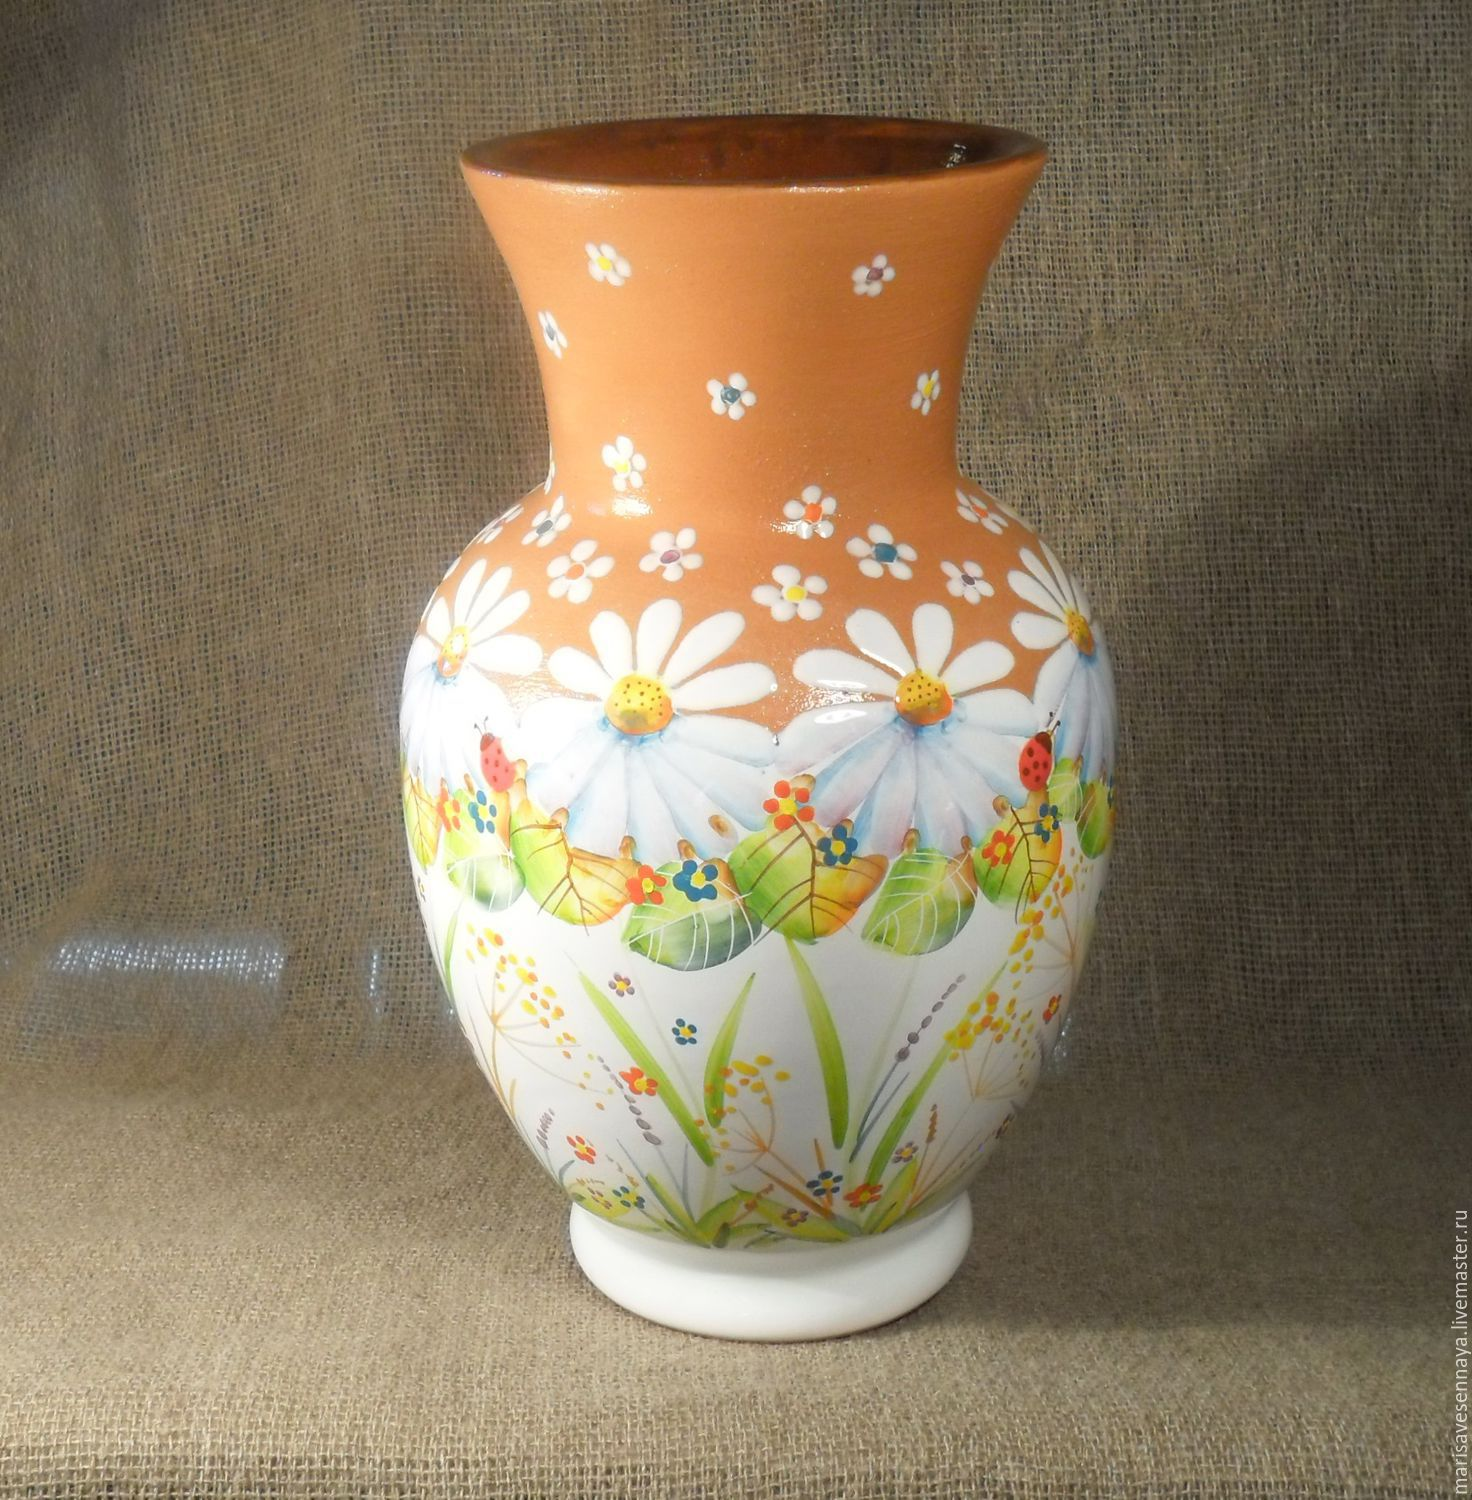 clay flower vase painting designs